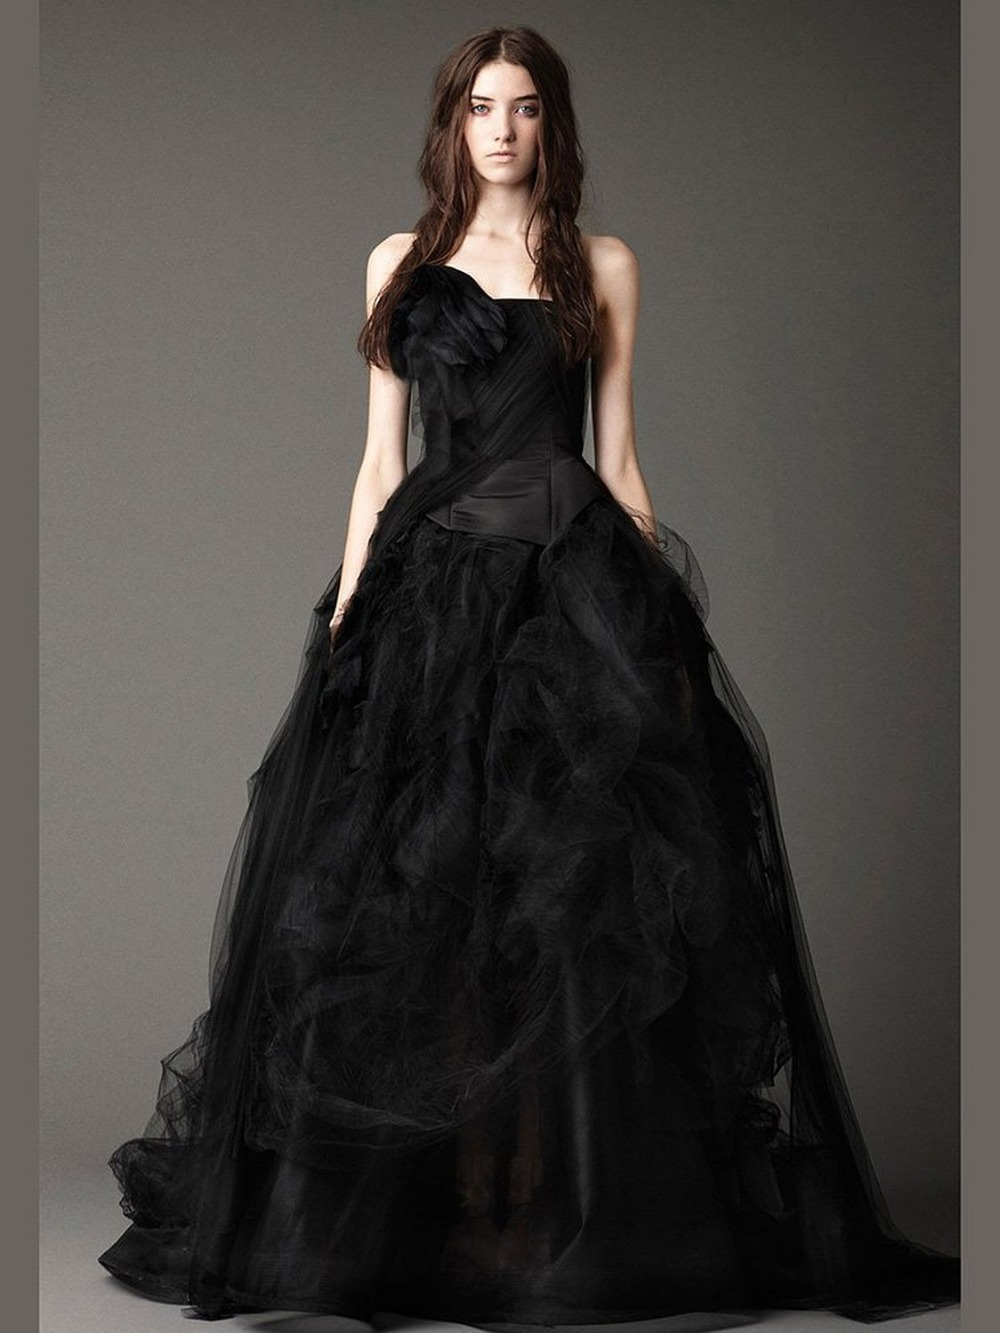 Gothic Wedding Shop - Special halloween long tulle backless strapless puffy boho bridal gowns black victorian gothic wedding dresses robe de mariage